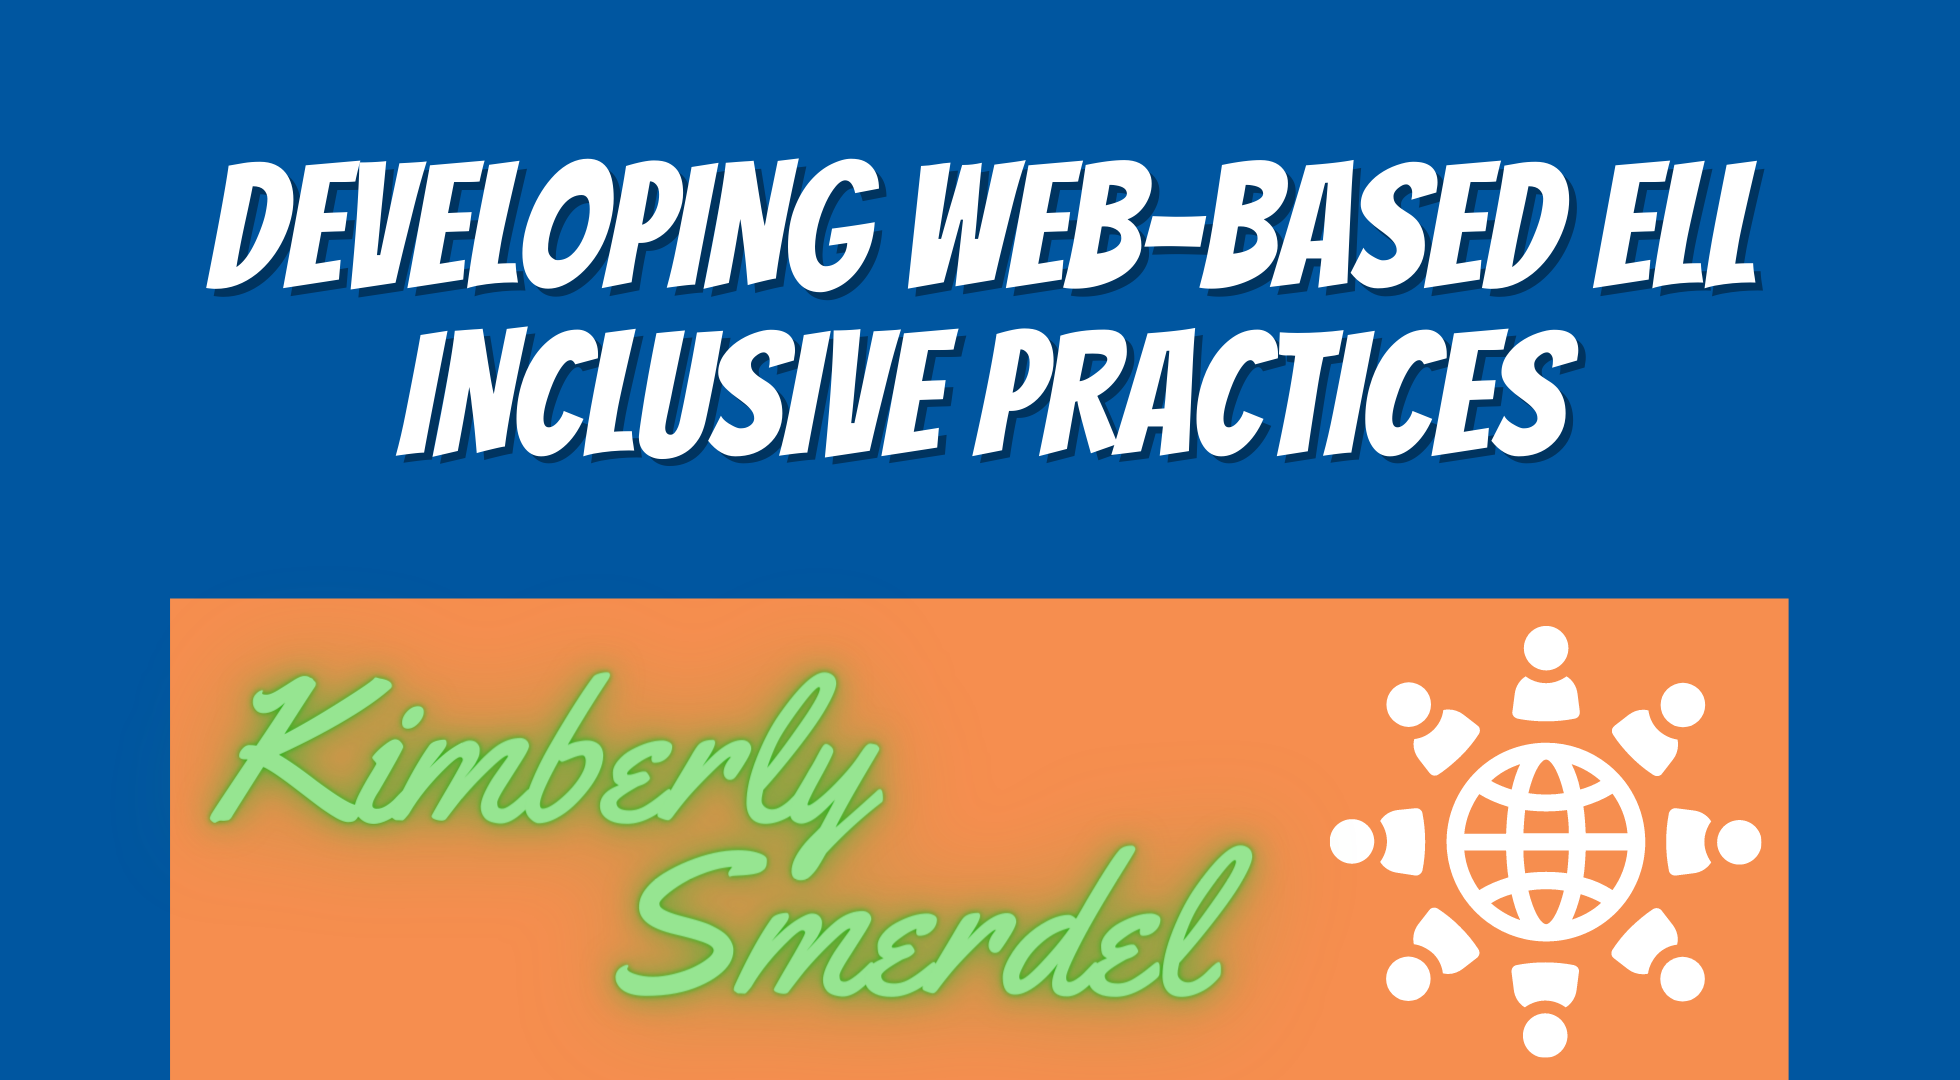 Developing Web-based ELL Inclusive Practices